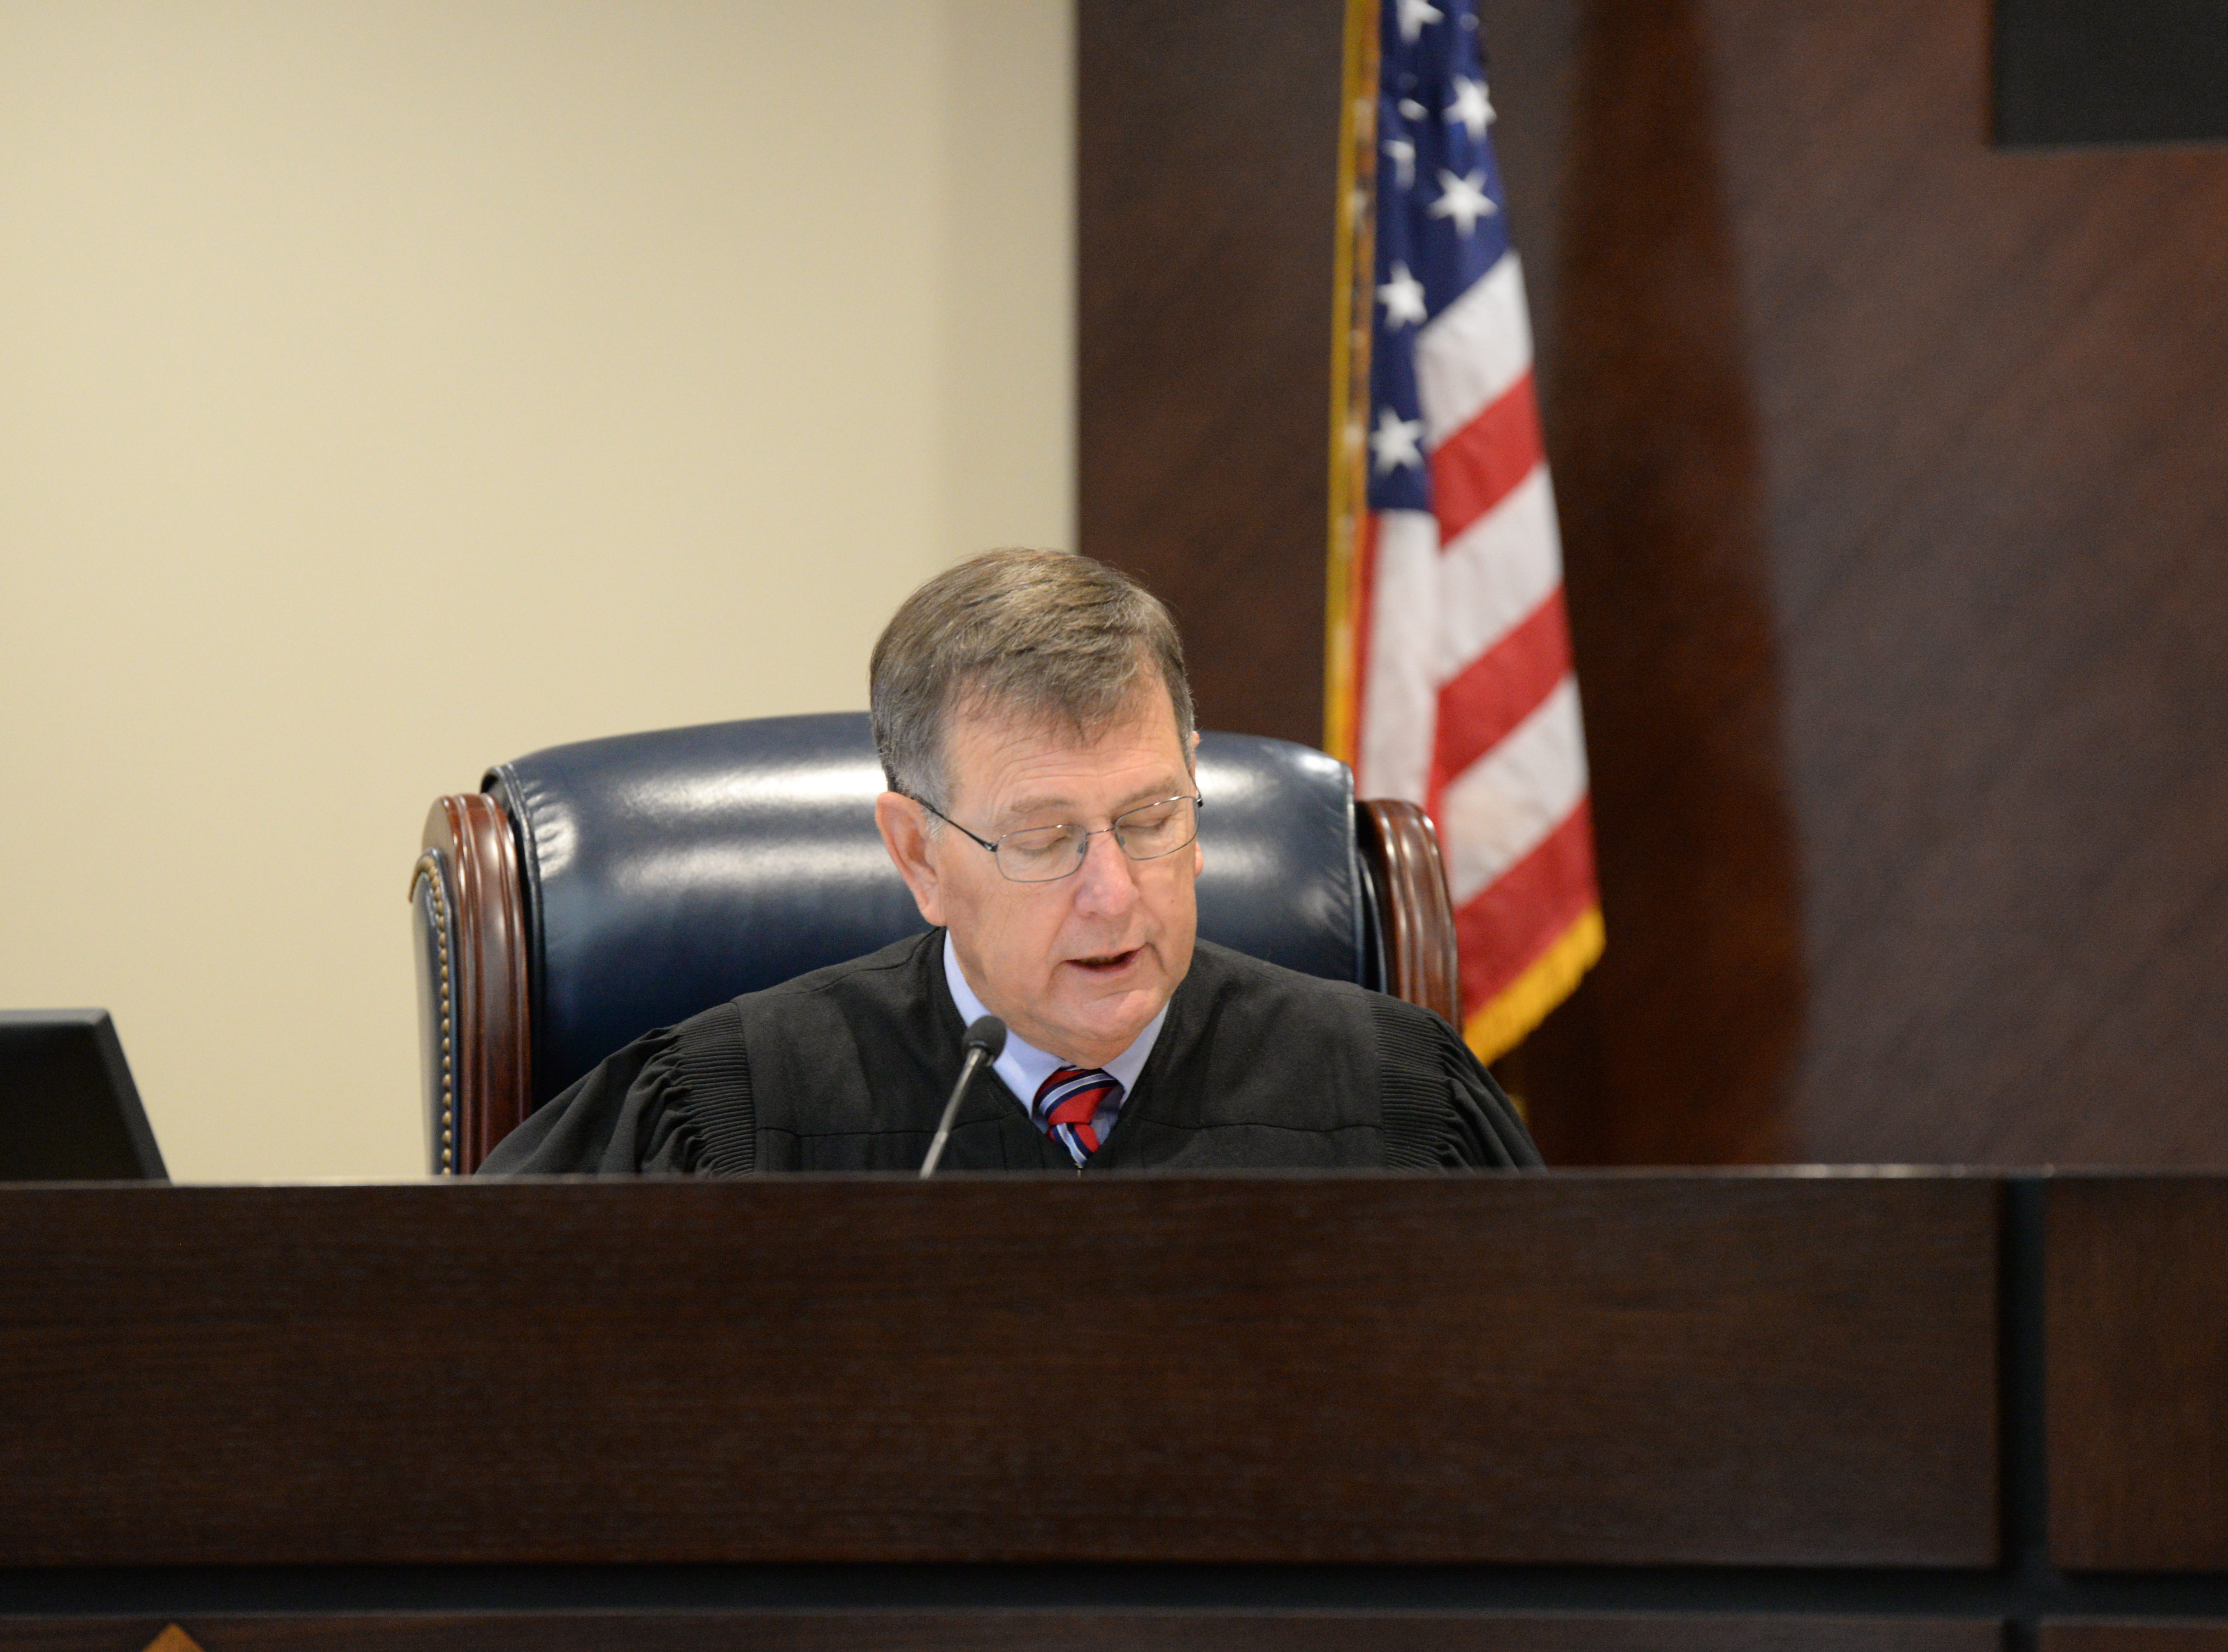 Circuit Judge James Hankinson reads jury instructions during the trial of Denise Williams for the murder of her husband Mike Williams at the Leon County Courthouse Friday, Dec. 14, 2018.